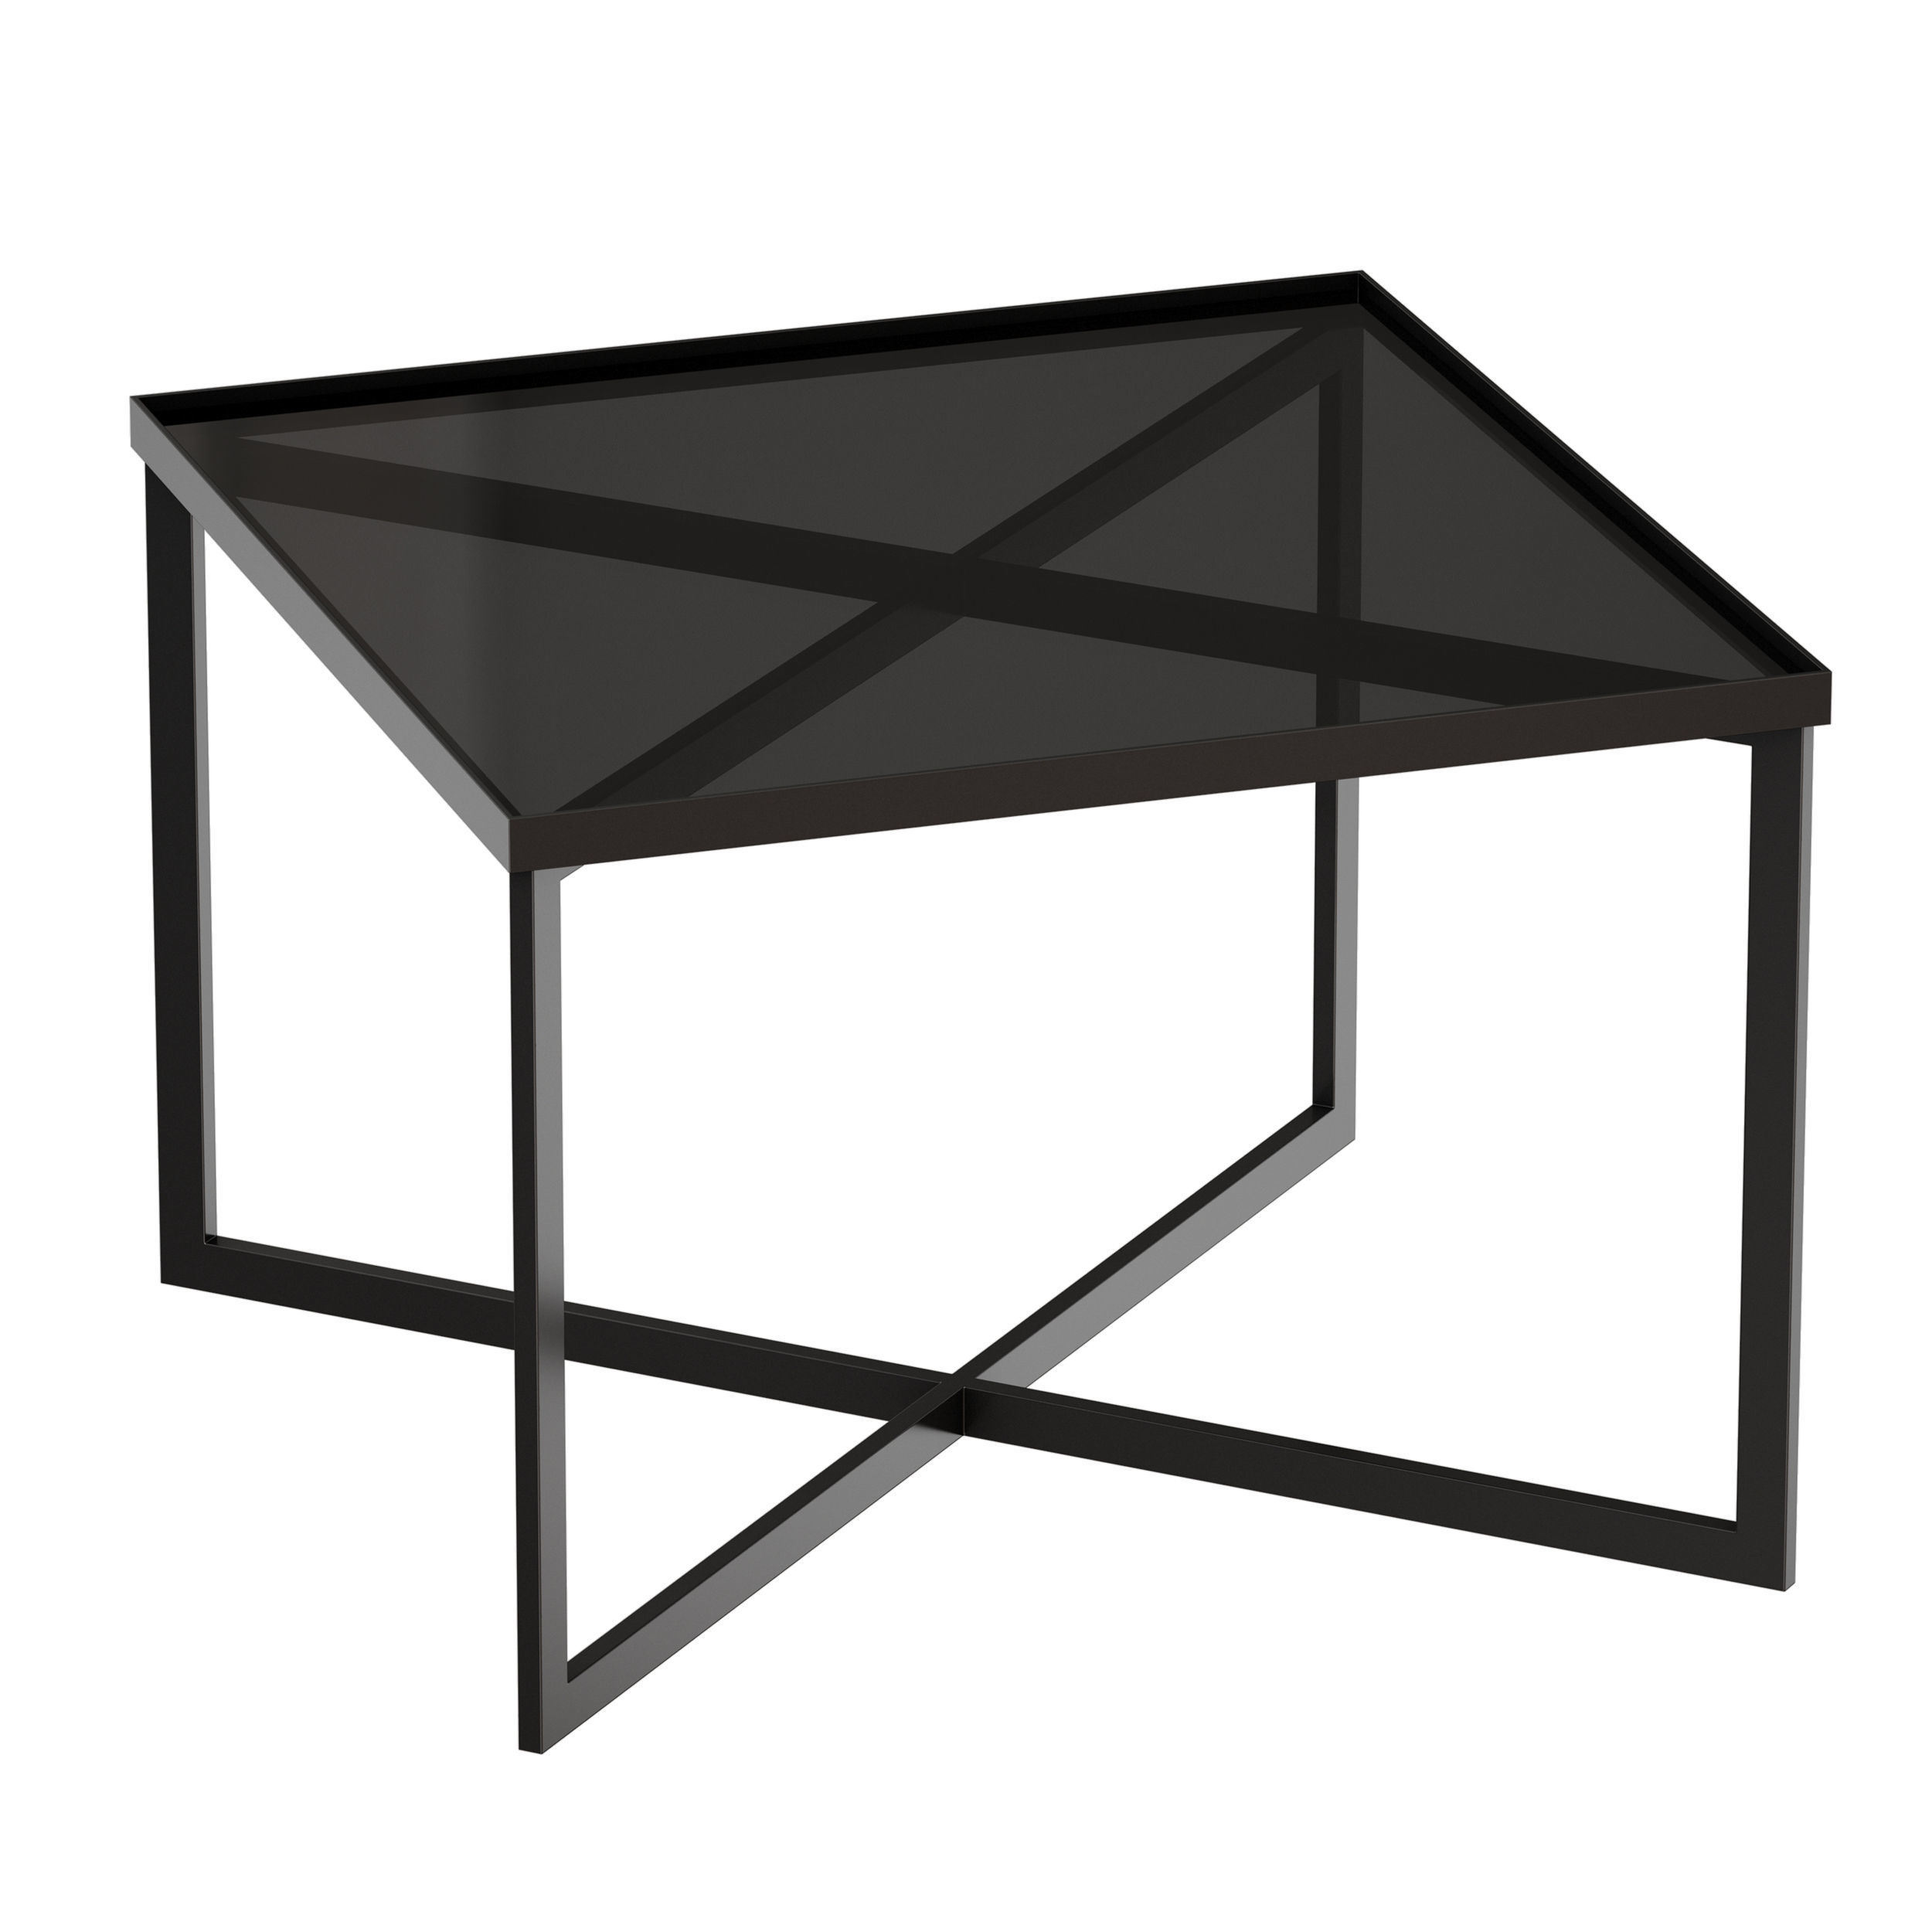 Gibson Smoke Glass Bunching Table Crate and 3D model